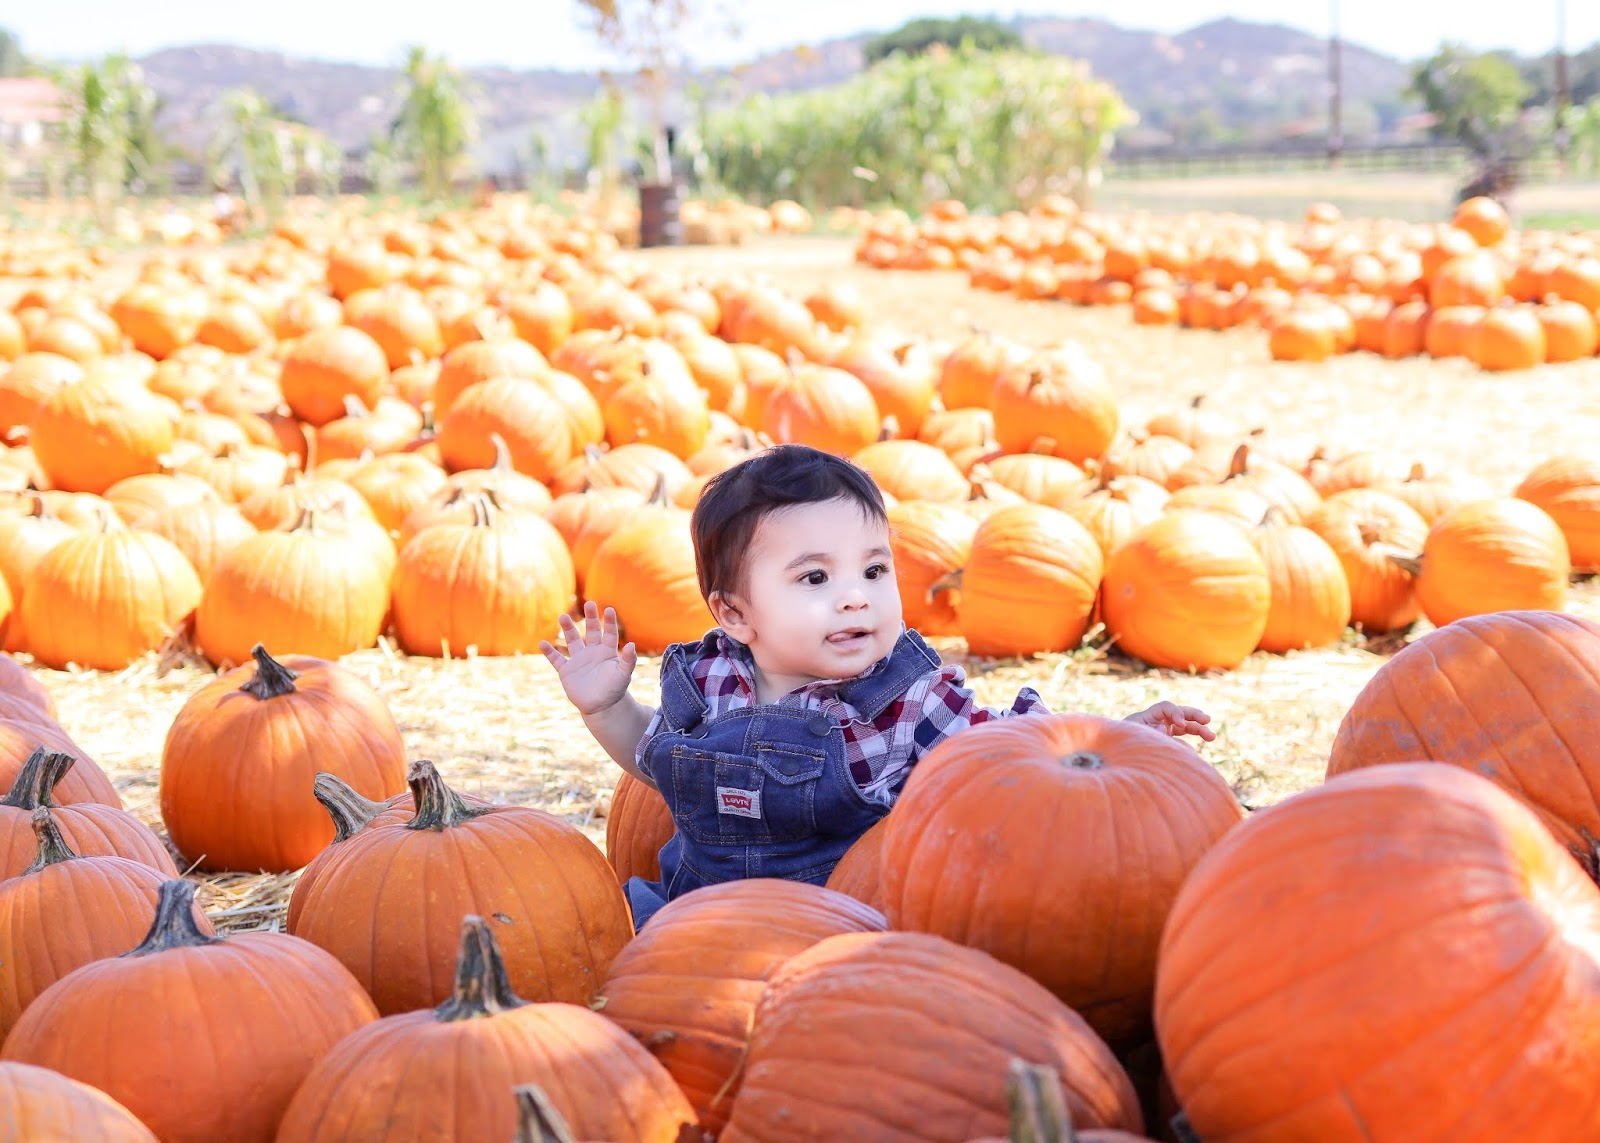 bates nut farm pumpkin patch fun for kids, so cal family blogger